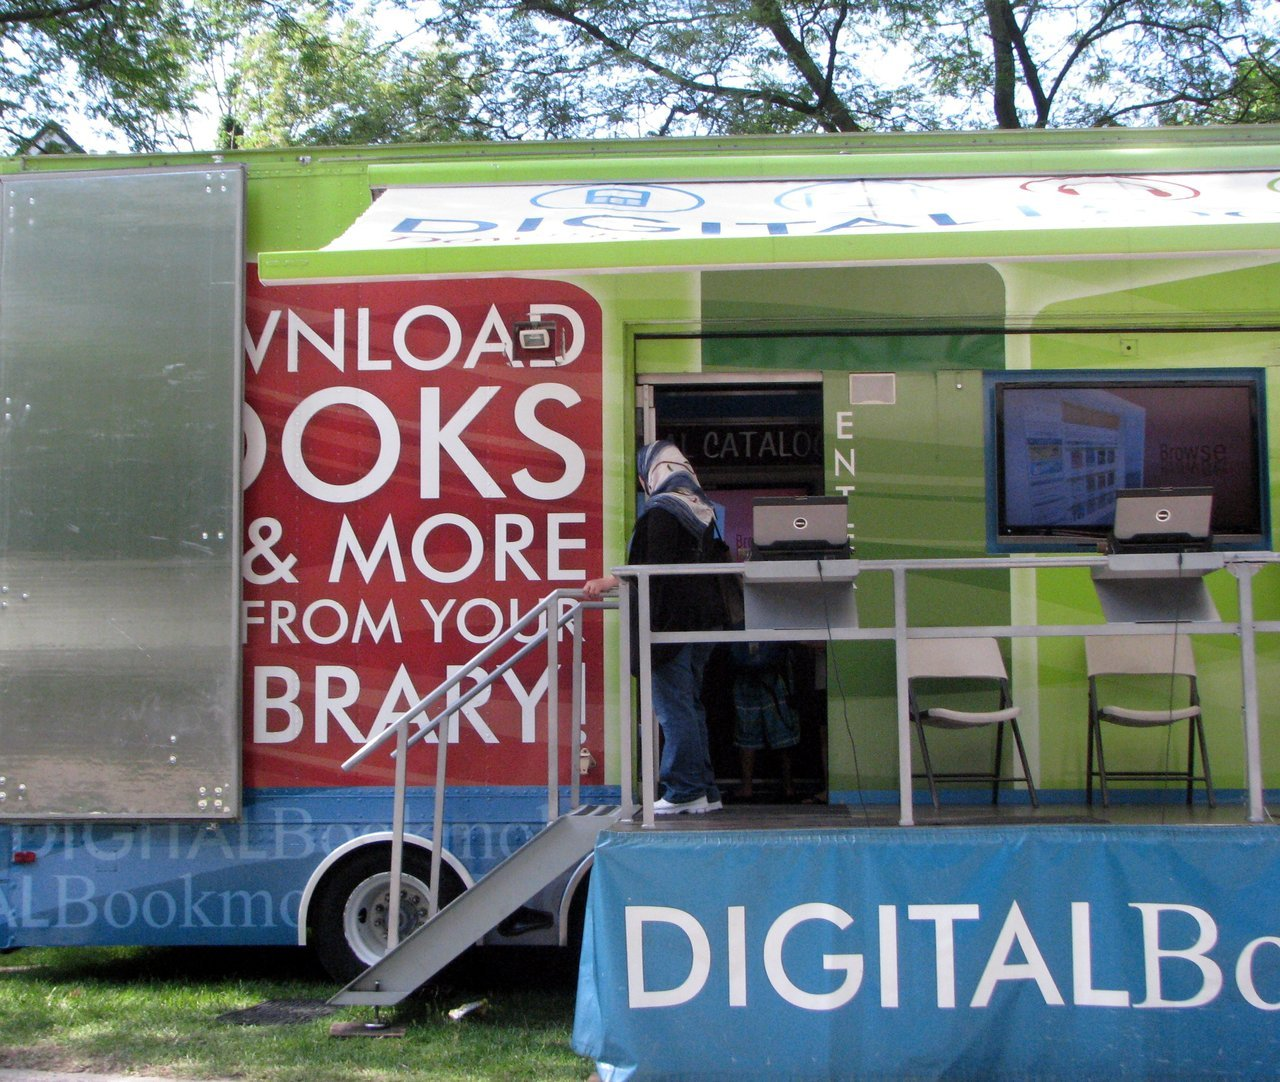 This is the first time I've seen the Digital Bookmobile